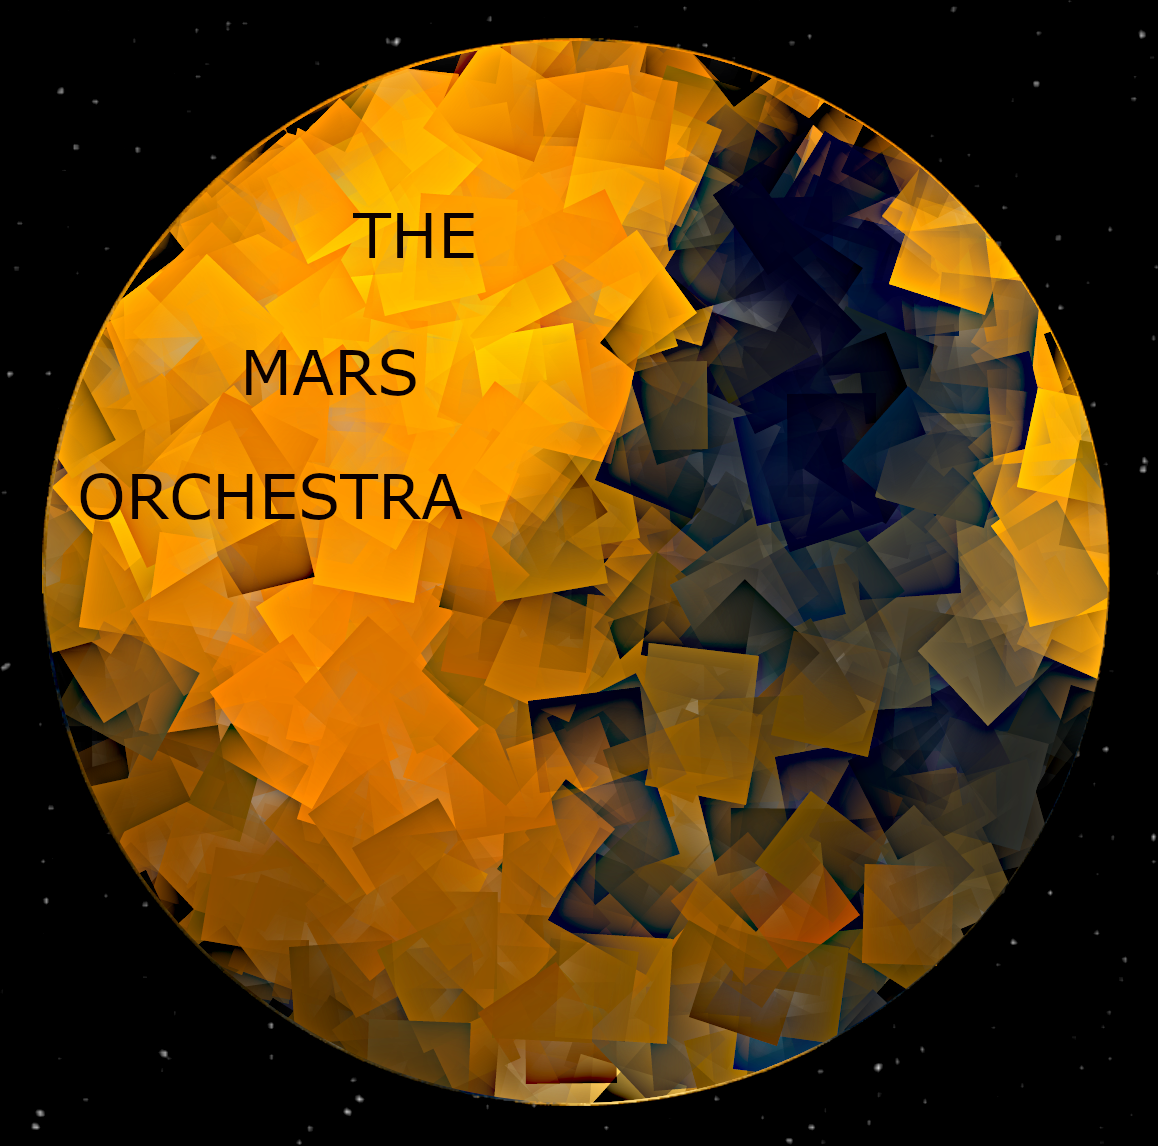 The Mars Orchestra